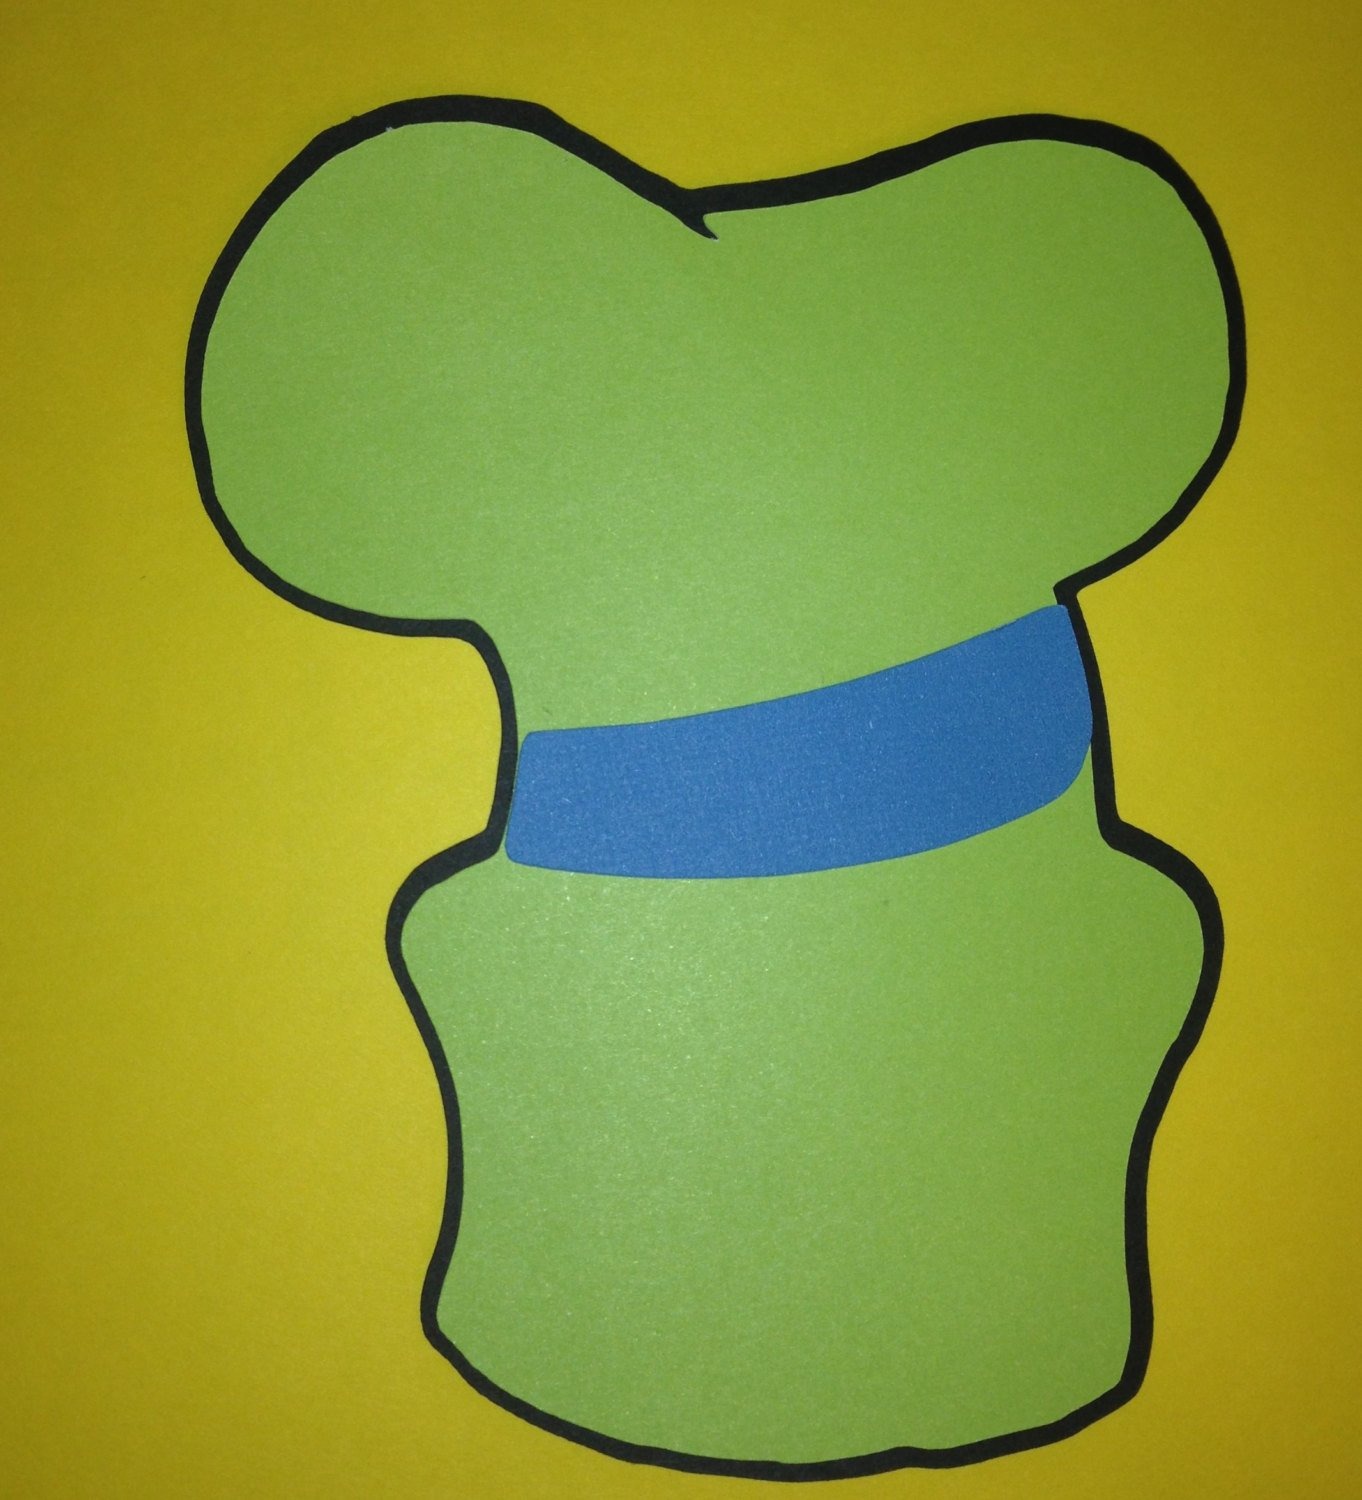 Goofy Hat Template 10 5 Goofy Hat Die Cut for Centerpieces Banners